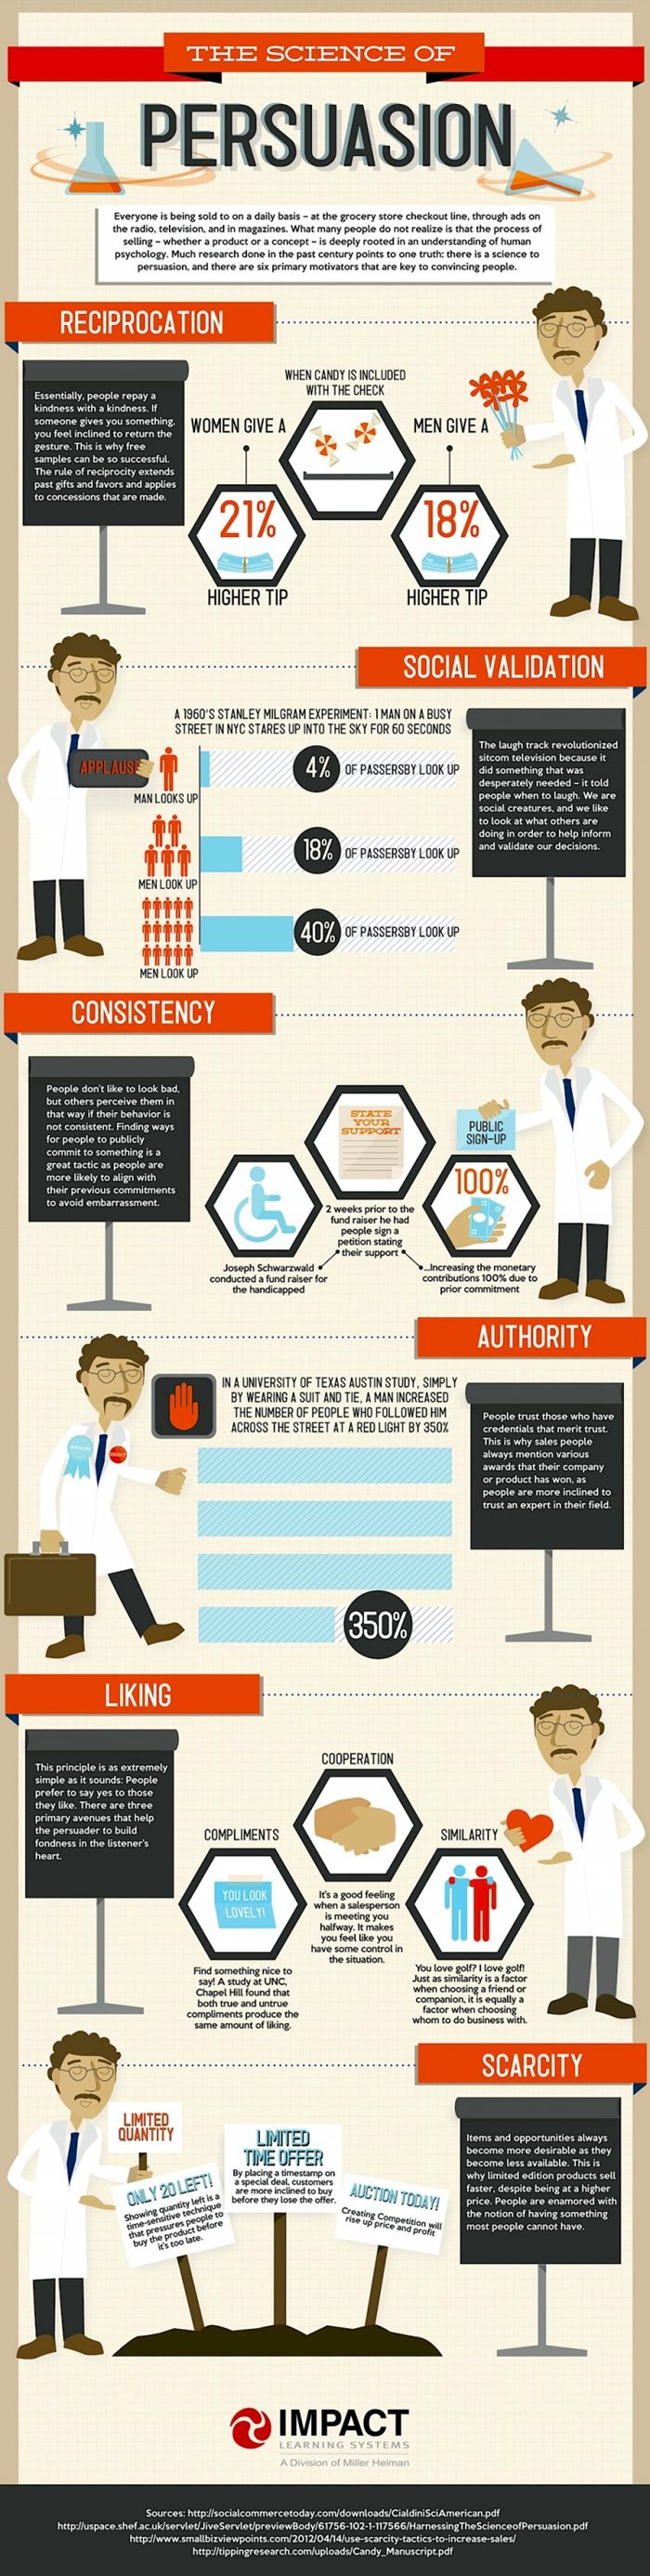 Infographic - science of persuasion overcoming objections